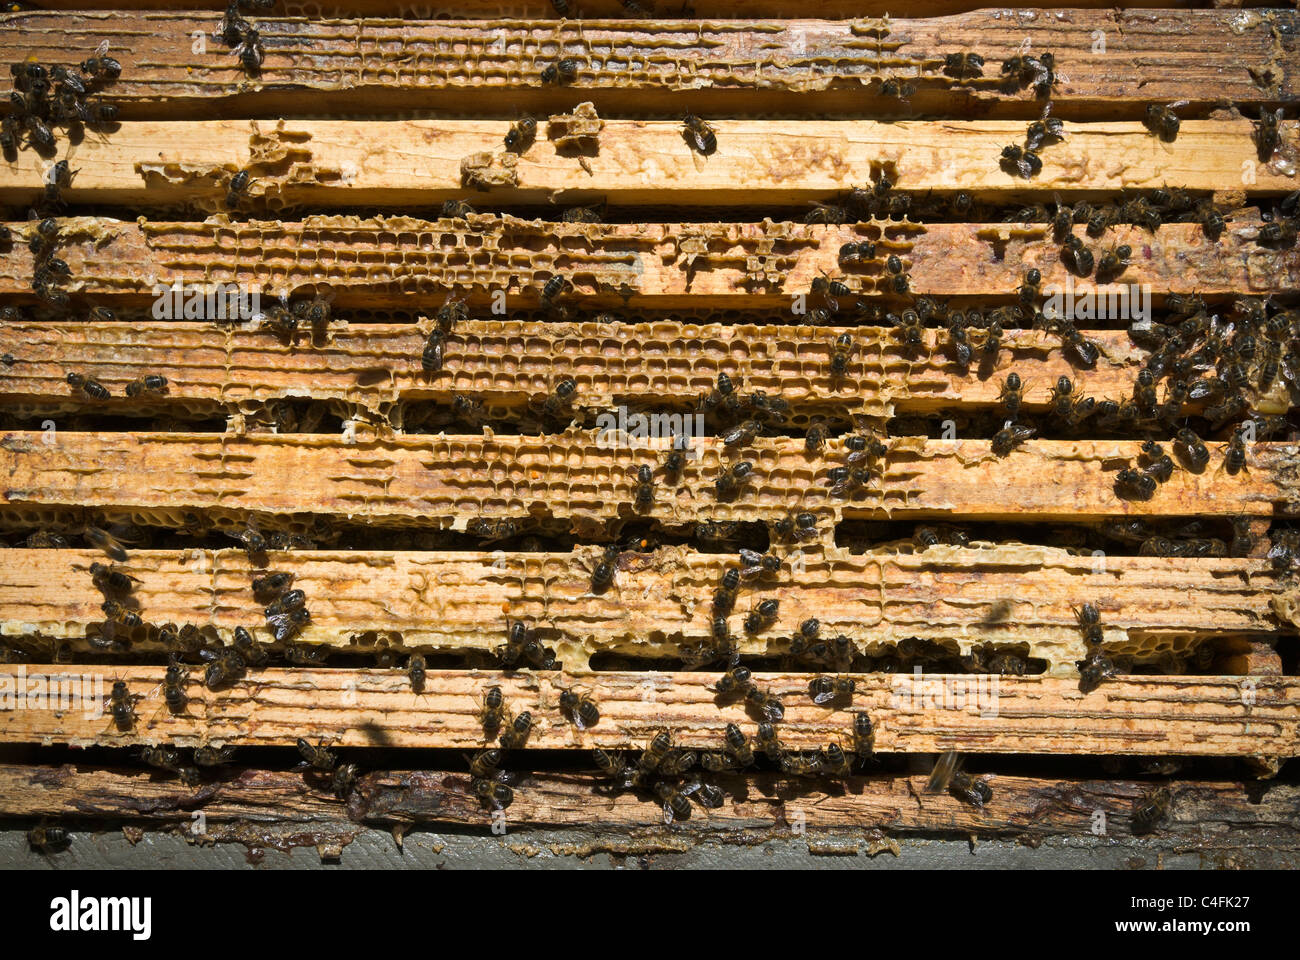 Beekeeping in a small exploitation of some twenty beehives, Anso, Huesca, Spain, Europe. - Stock Image